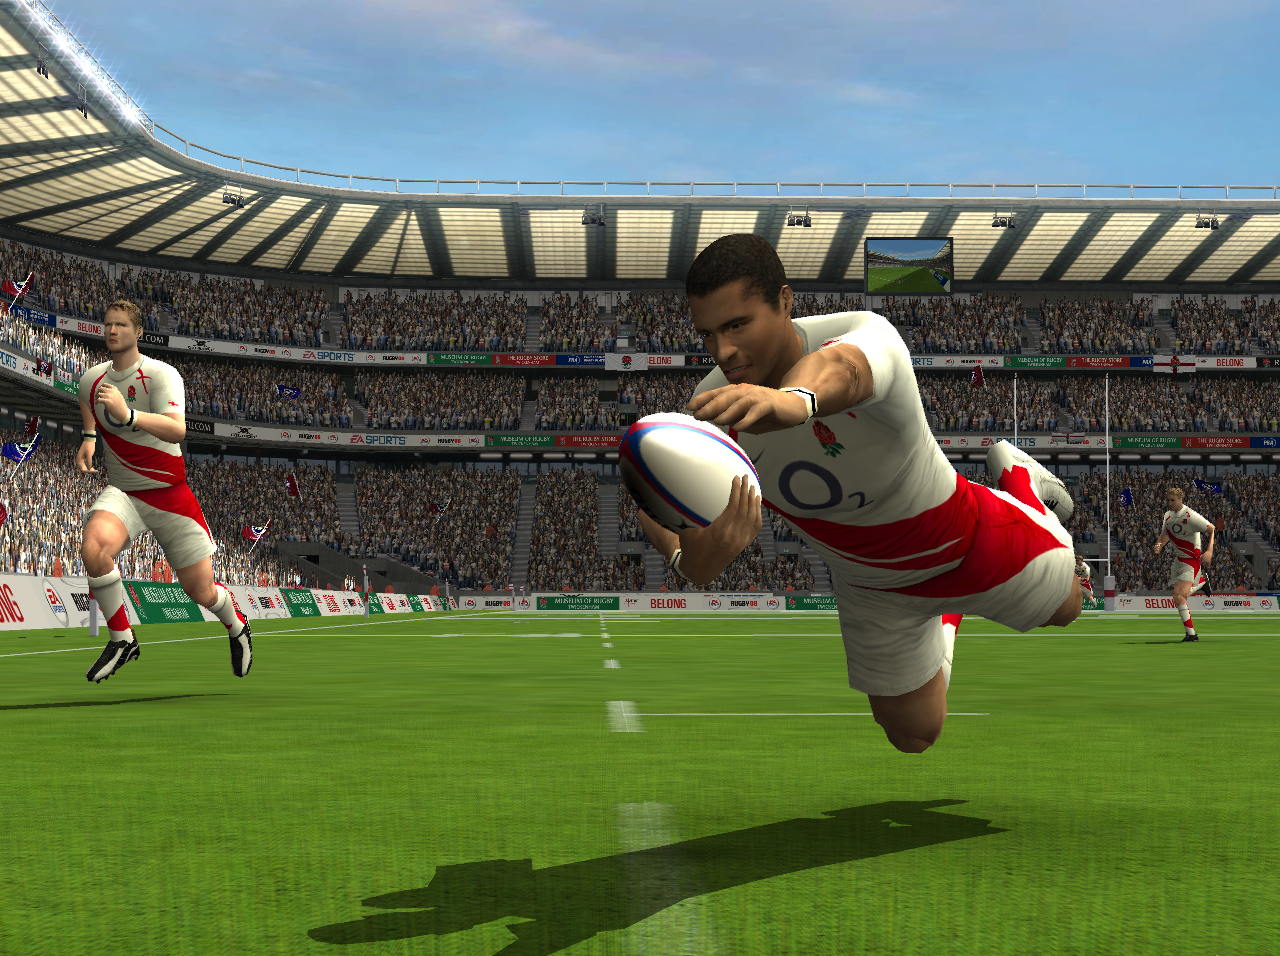 Rugby 08 Para Pc 1 Link